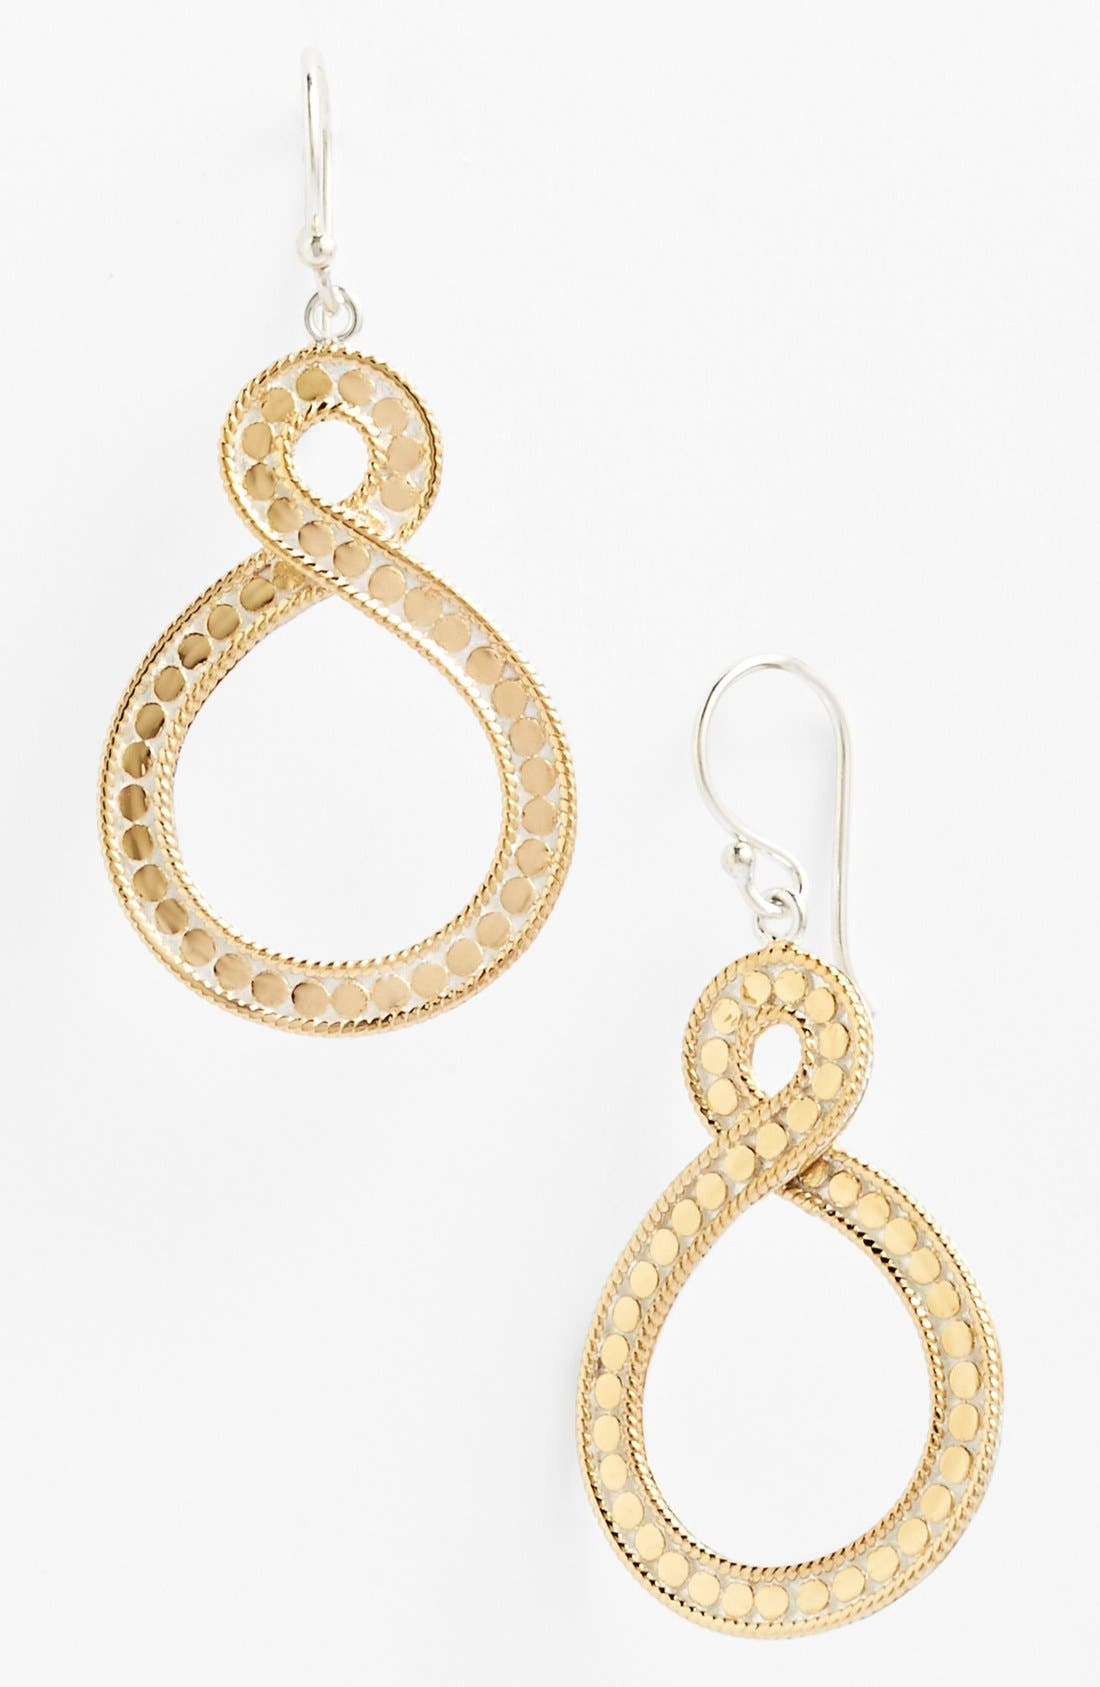 Main Image - Anna Beck 'Timor' Twist Drop Earrings